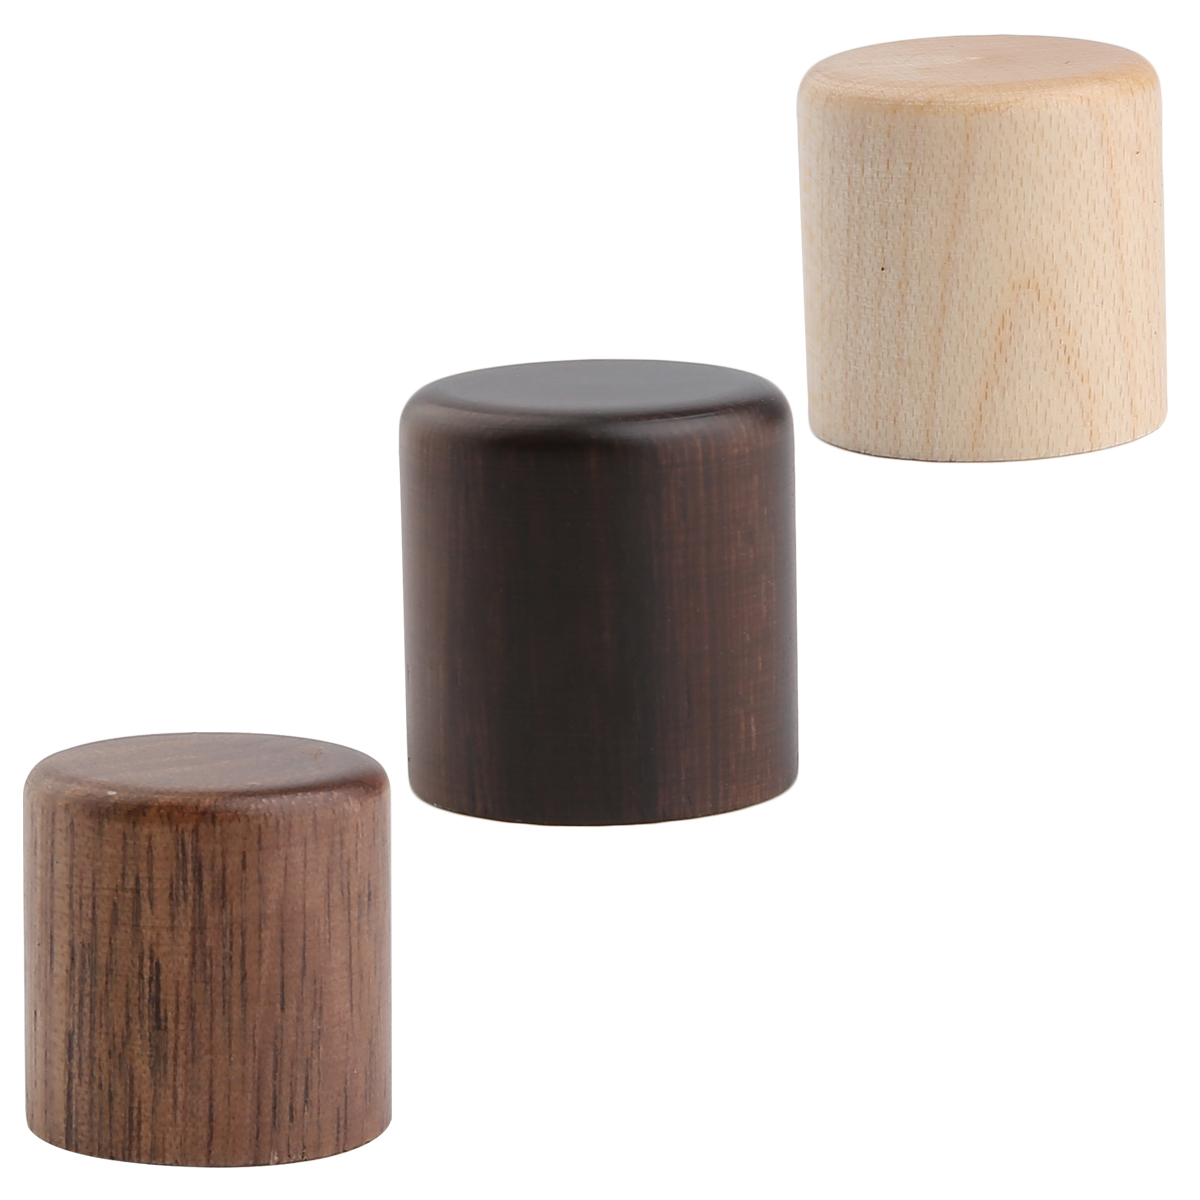 Dopro 2pcs Wood Knobs Tele Style Dome Knobs Wood Control Knobs Guitar Bass Wood Barrel Knobs Maple/Rose/Walnut Wood